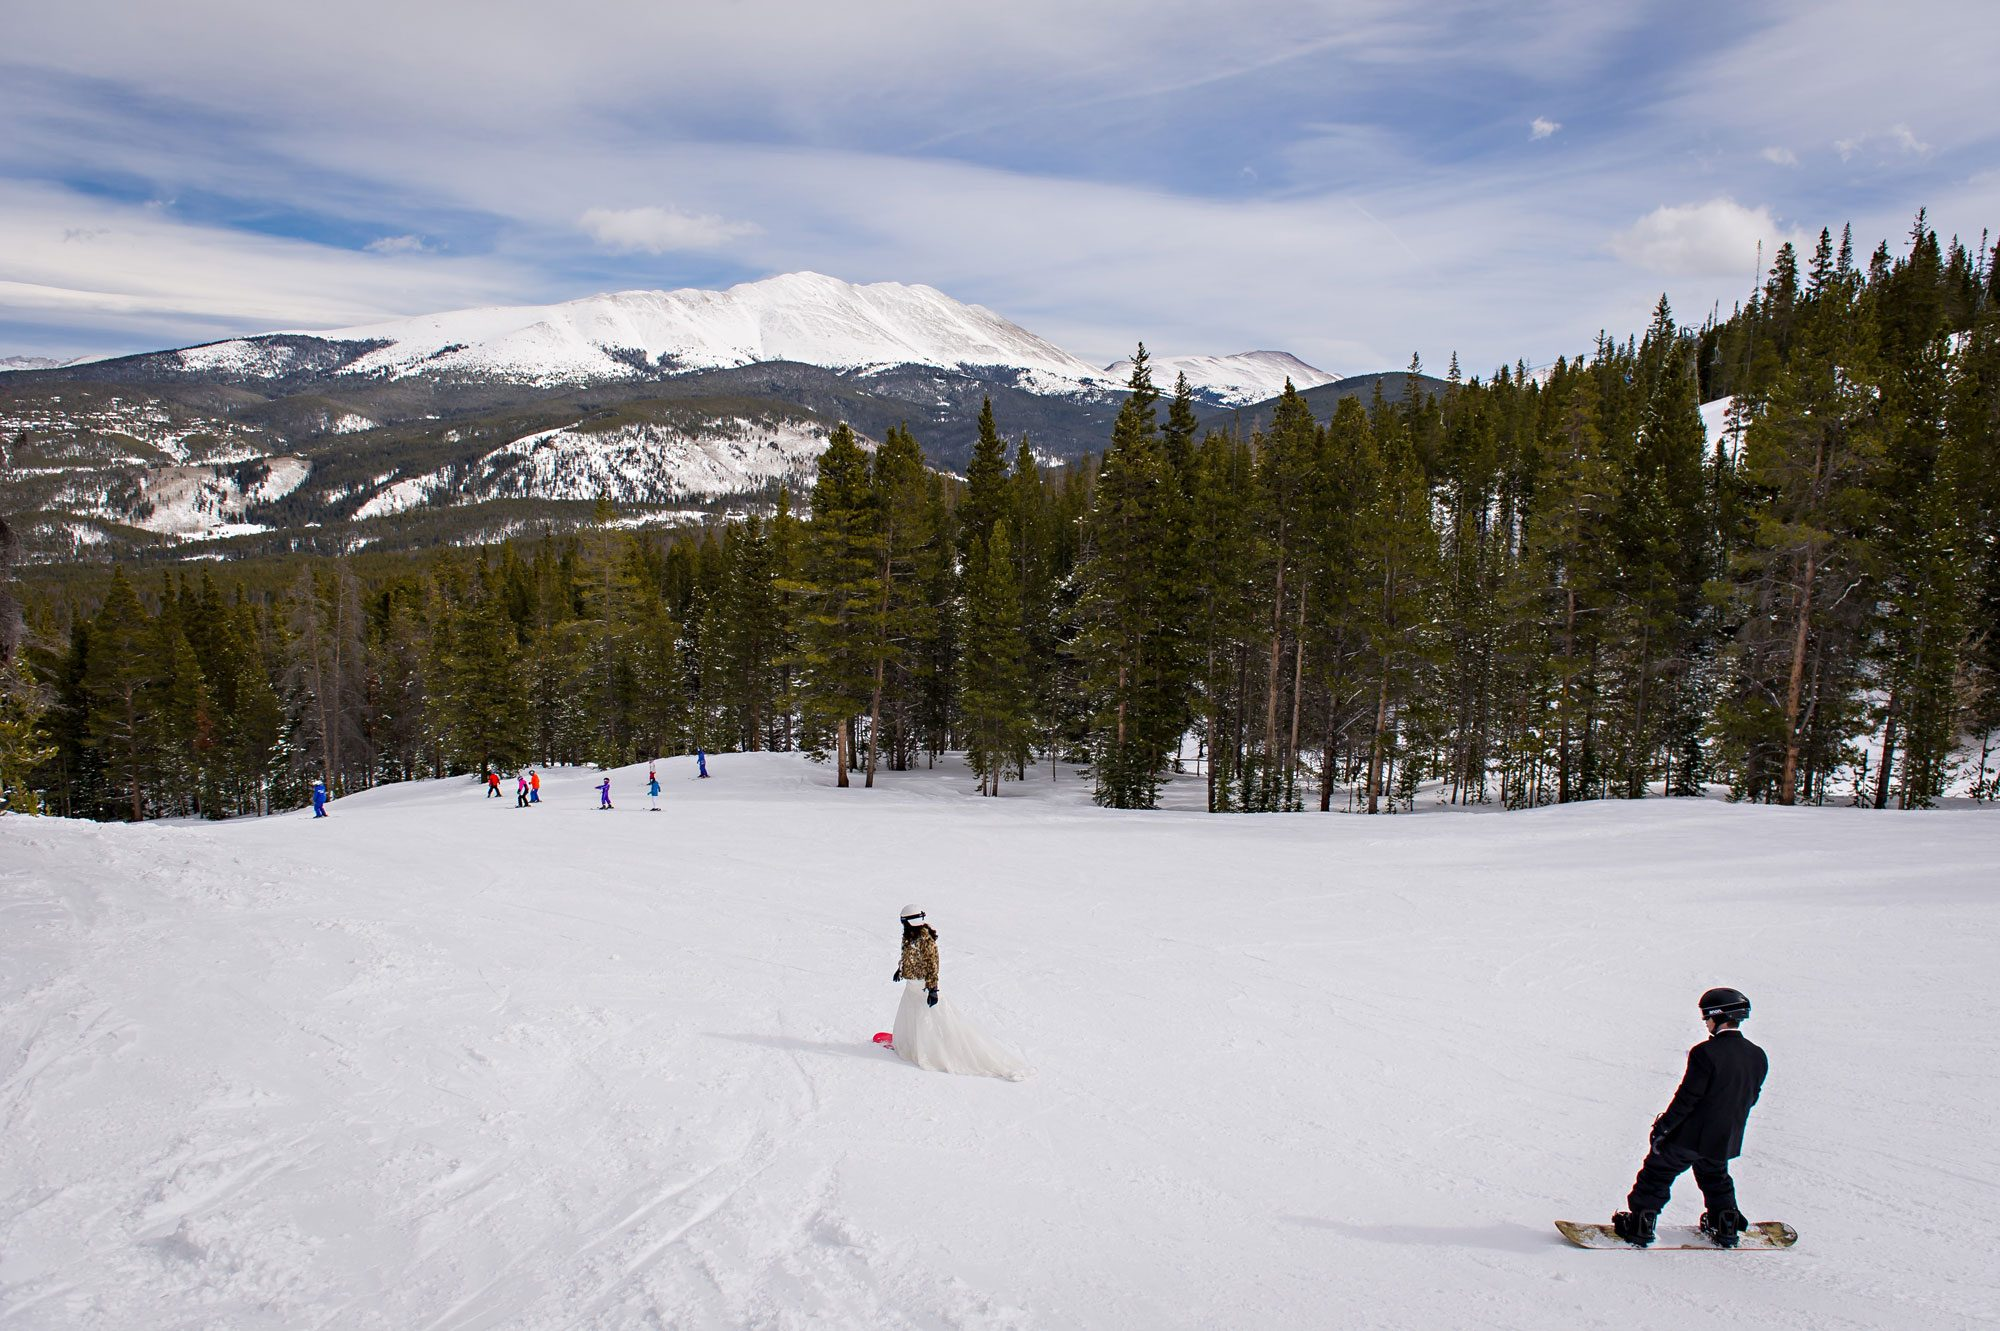 A Winter Wedding with a Snowboarding Bride & Groom in Breckenridge, CO